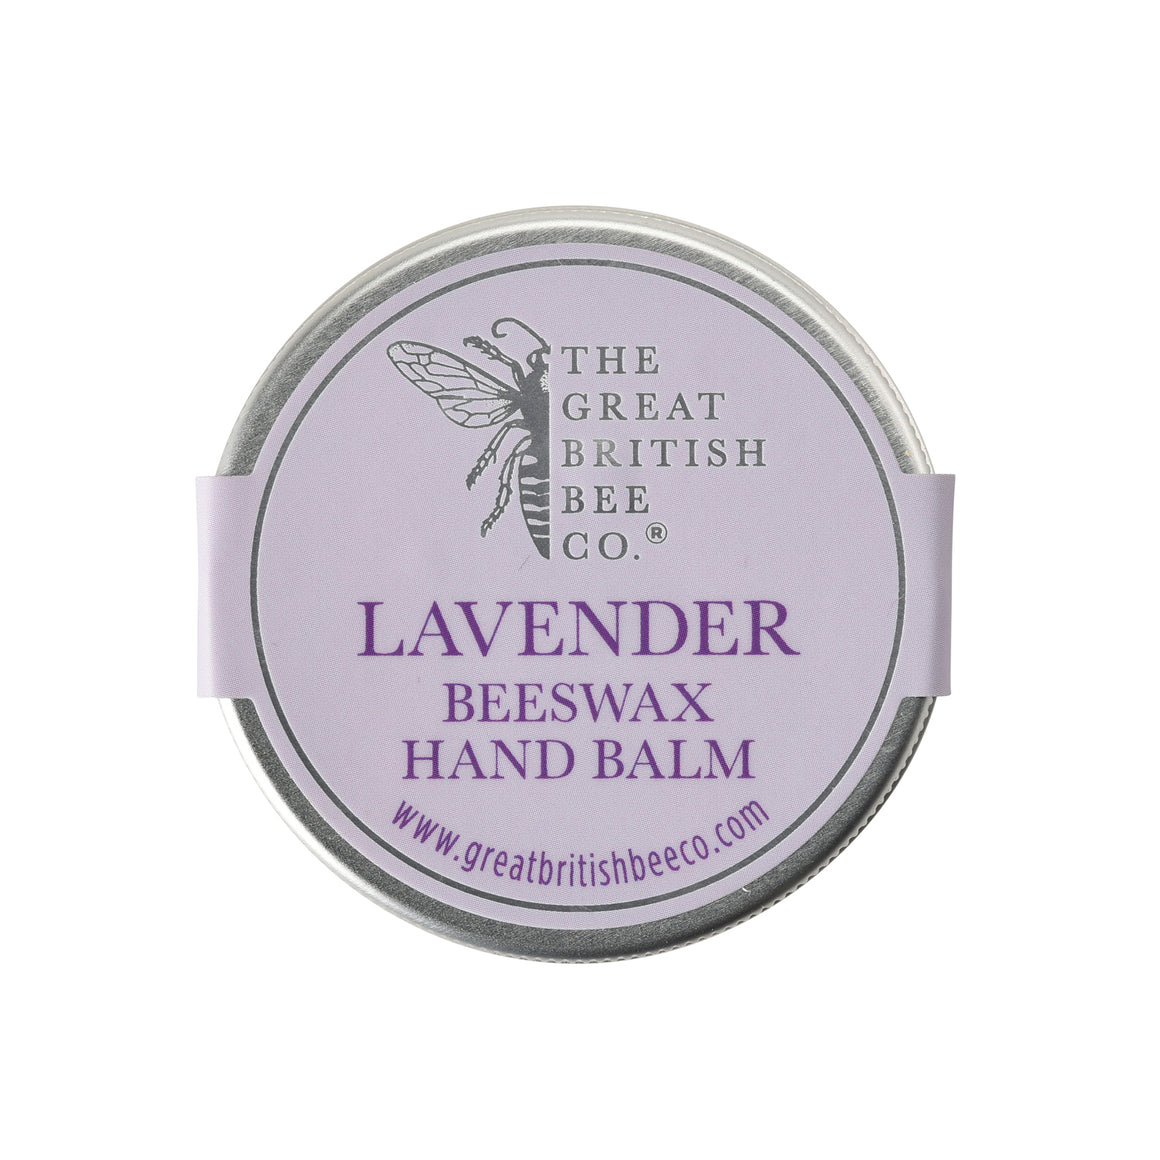 Lavender Hand Balm 50g - Dry skin protection